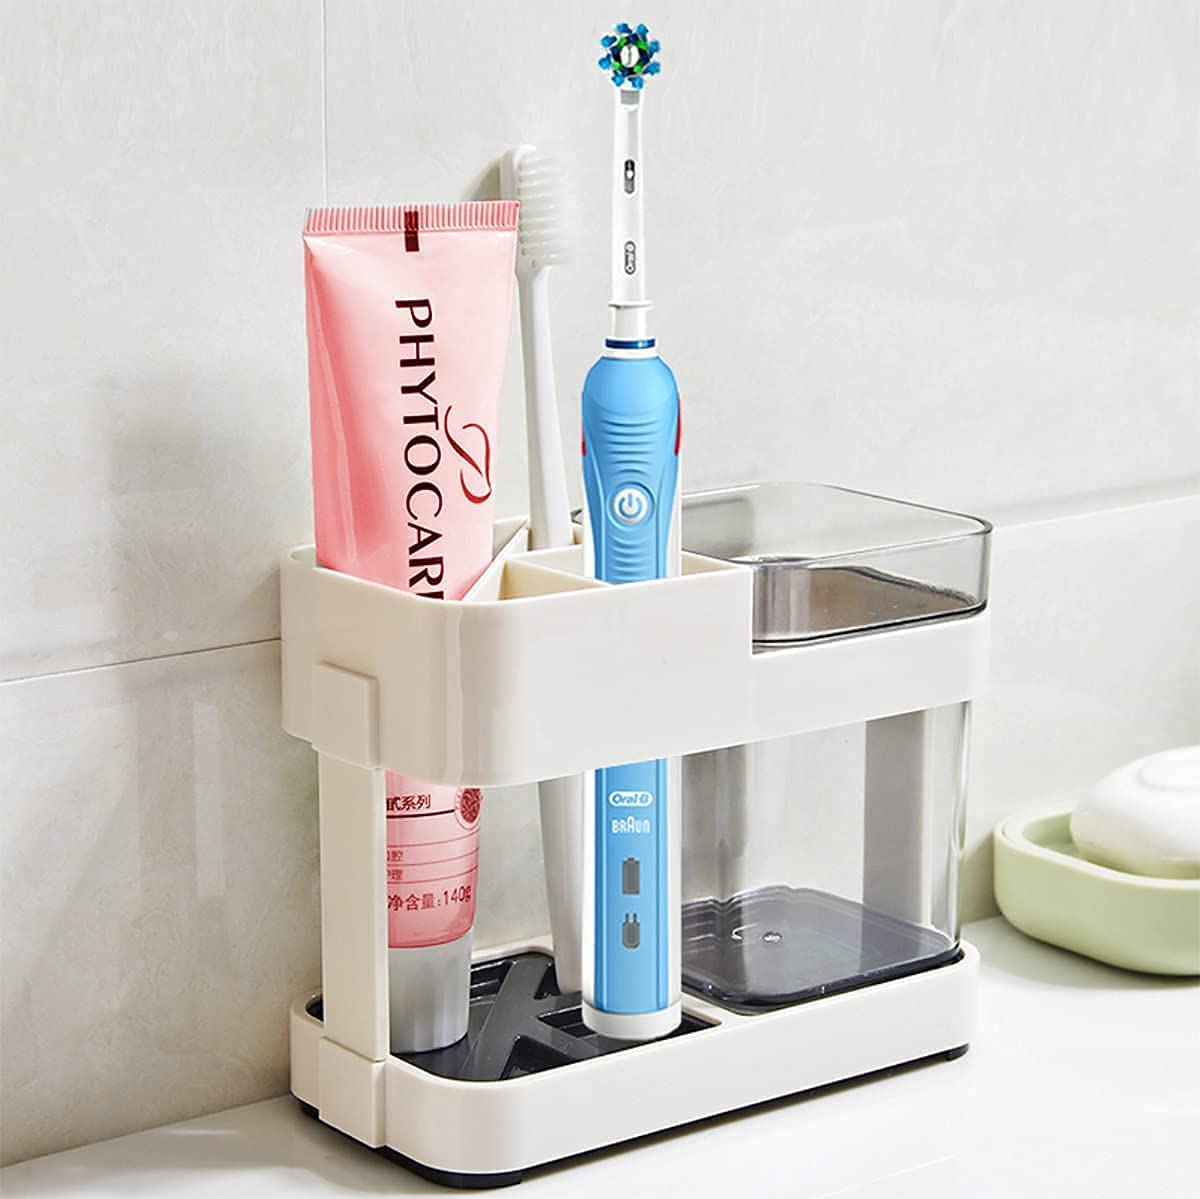 Toothbrush Holder Electric Tooth Brush Toothpaste Holder Bathroom Set Restroom Vanity Large Capacity Tooth Paste Accessories Storage Decor Cups Holder for Family Apartment(Contains 1 Cups)